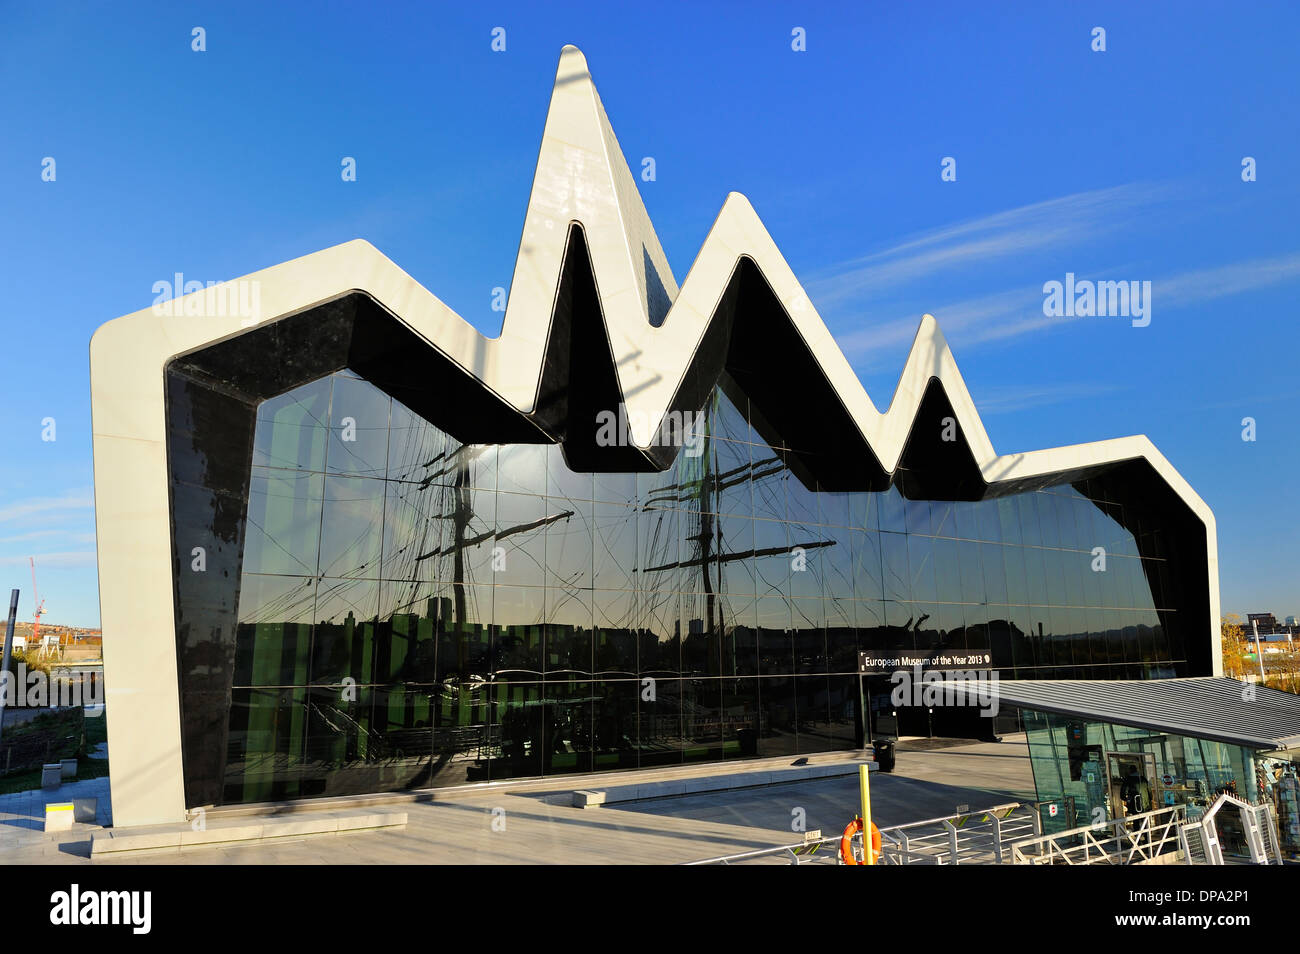 new riverside museum of transport glasgow scotland stock photo 65375241 alamy. Black Bedroom Furniture Sets. Home Design Ideas